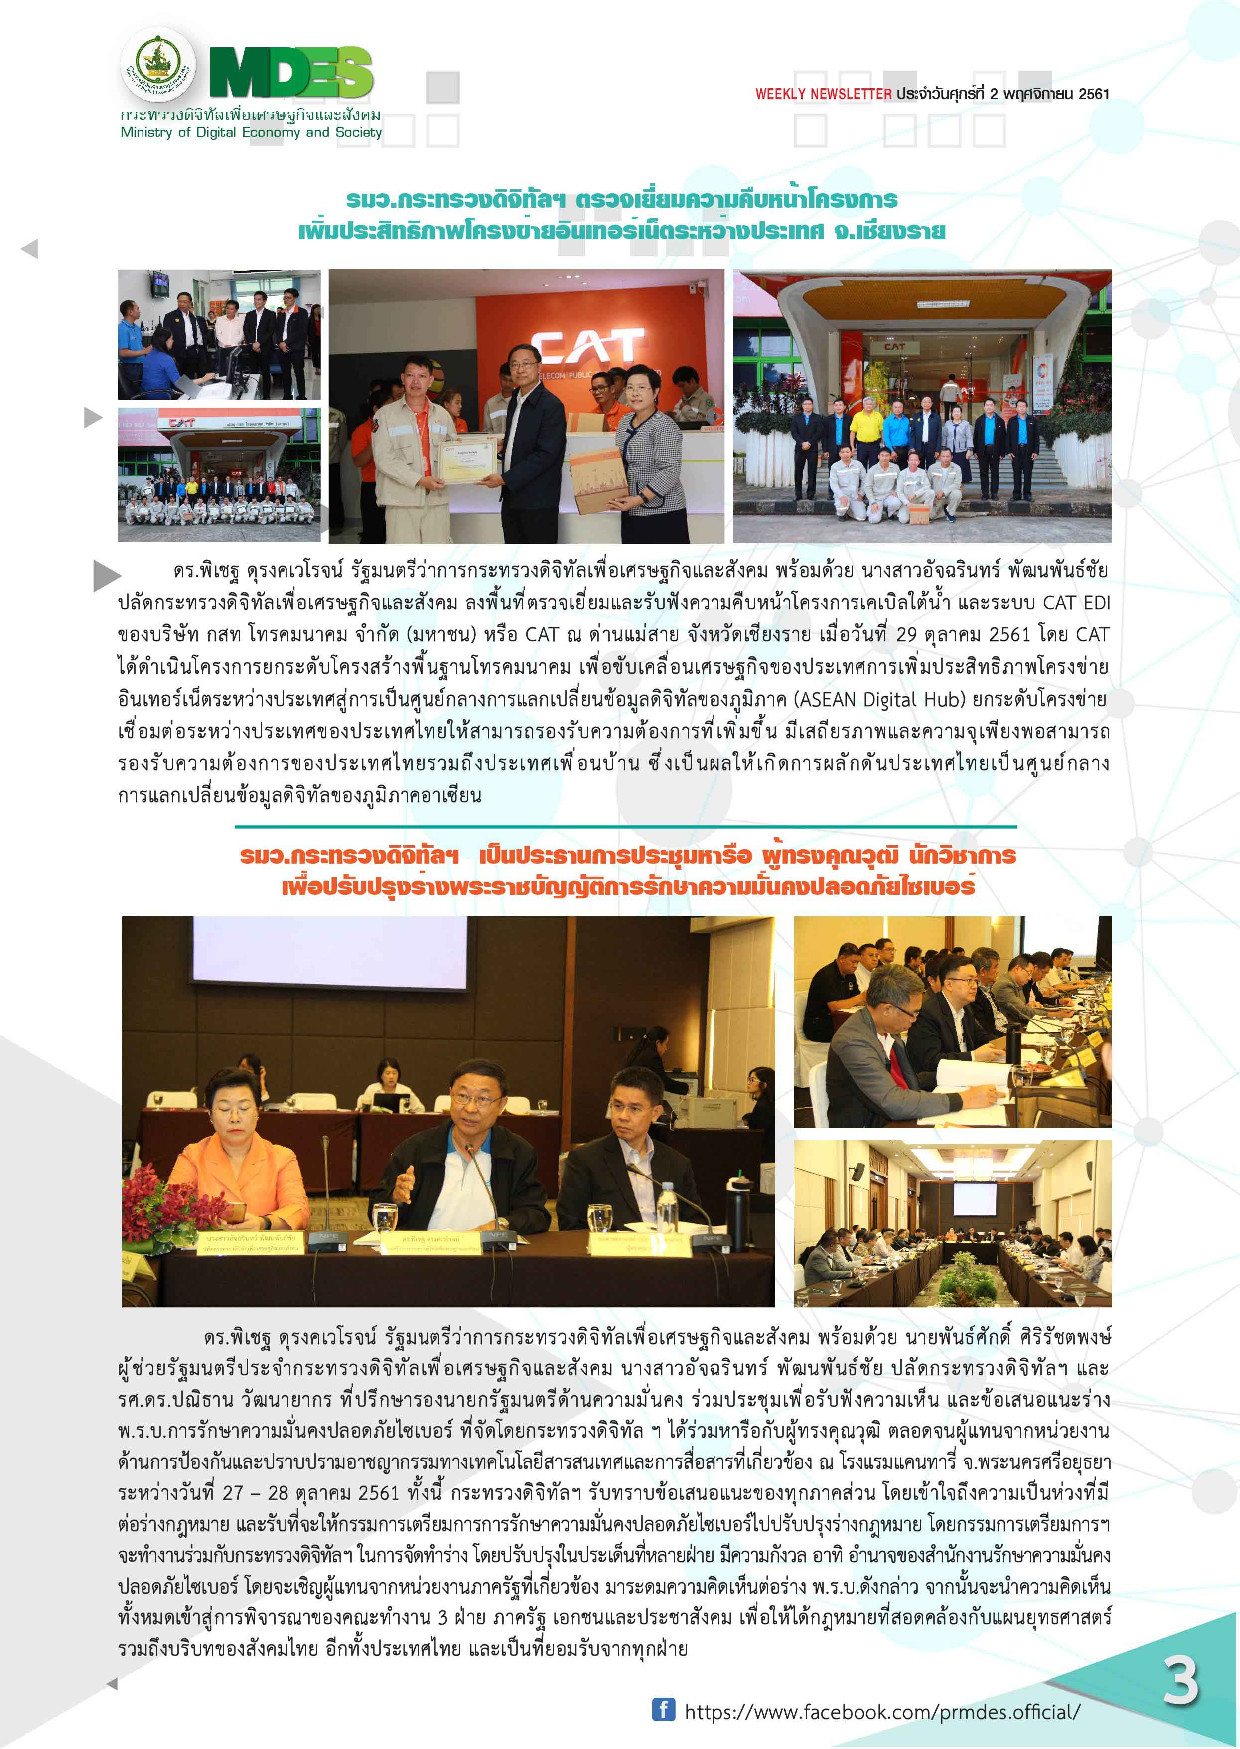 611102 WeeklyNewsletter p003